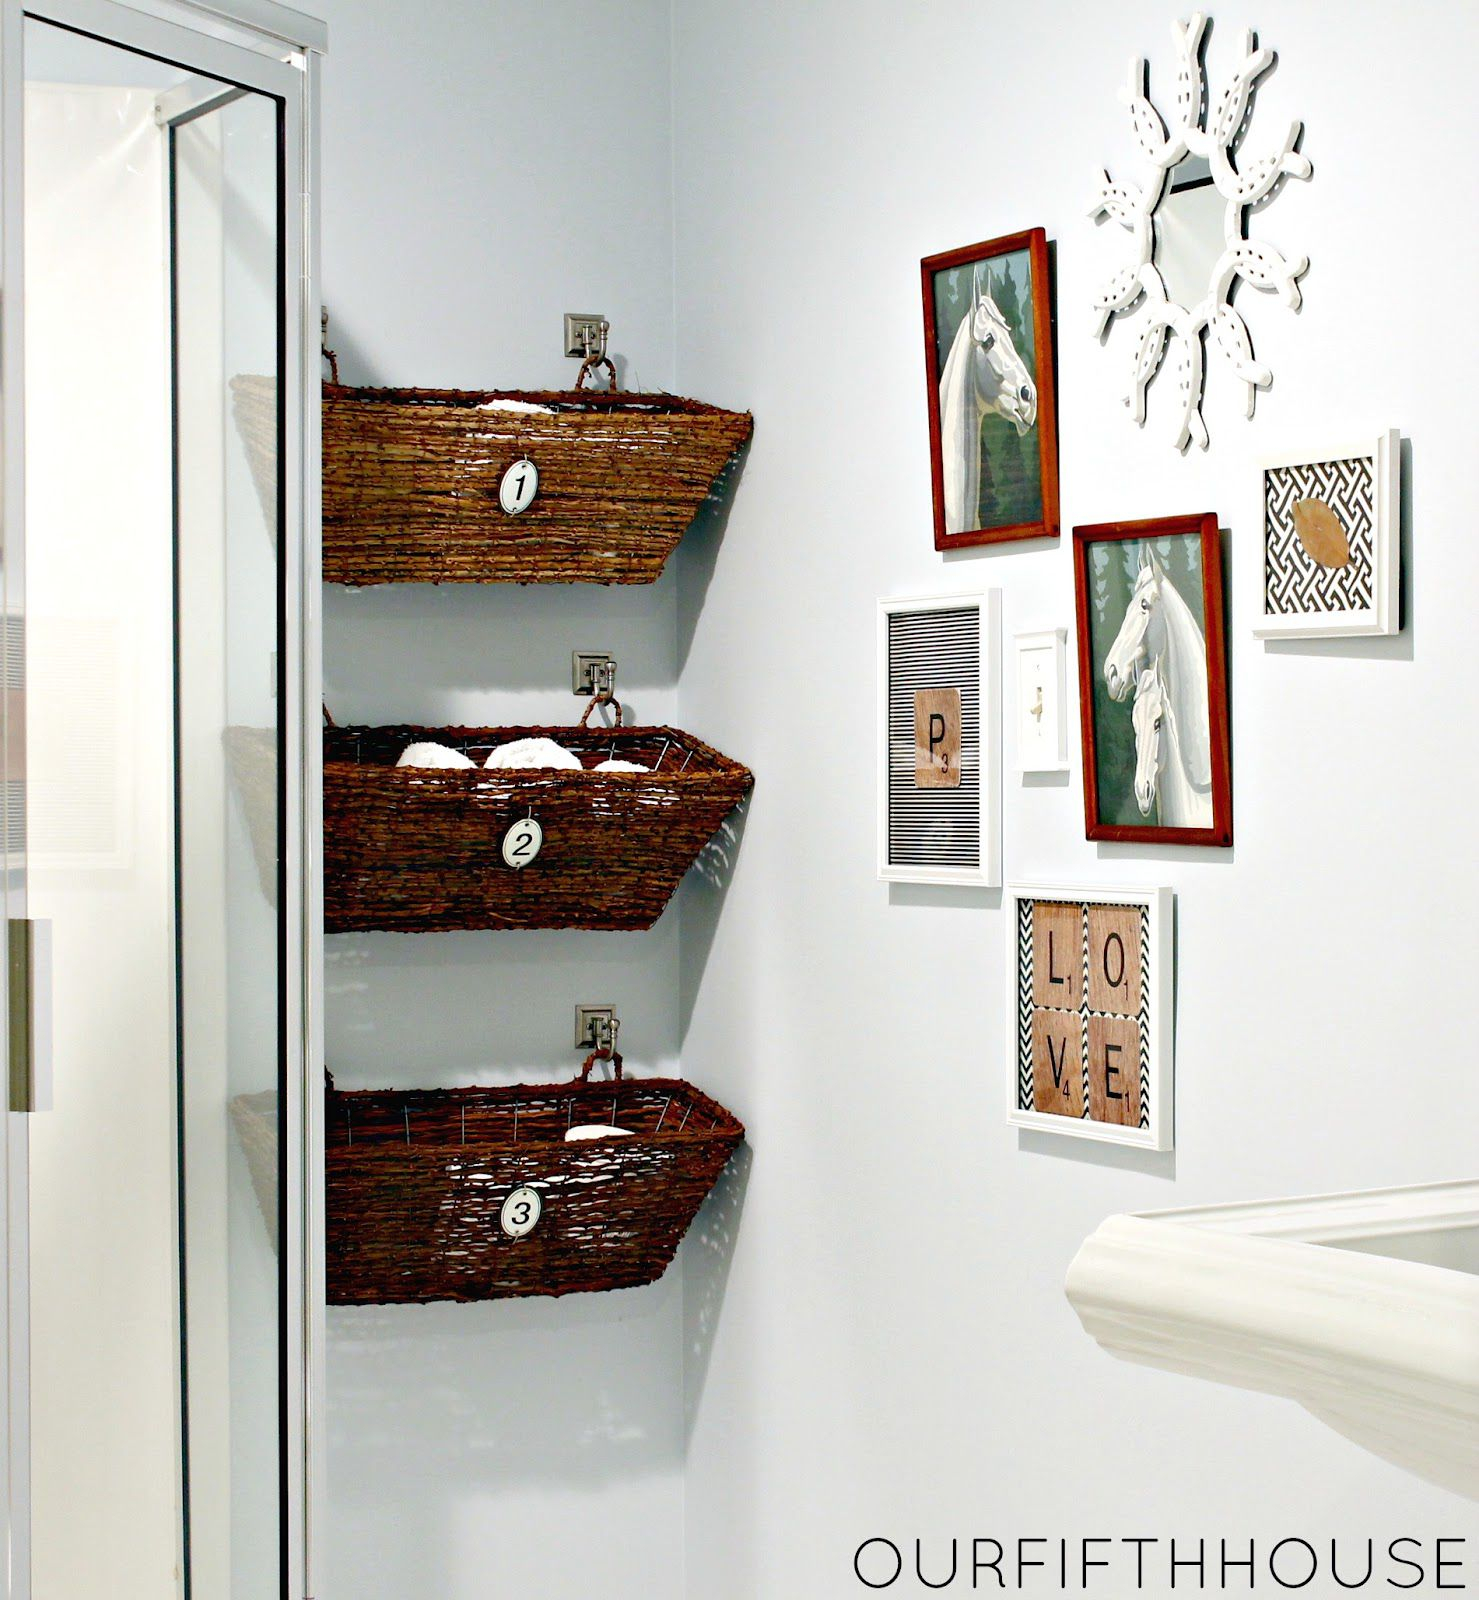 Fancy 15 Small Bathroom Storage Ideas - Wall Storage Solutions And Shelves with regard to Best of Bathroom Wall Storage Ideas